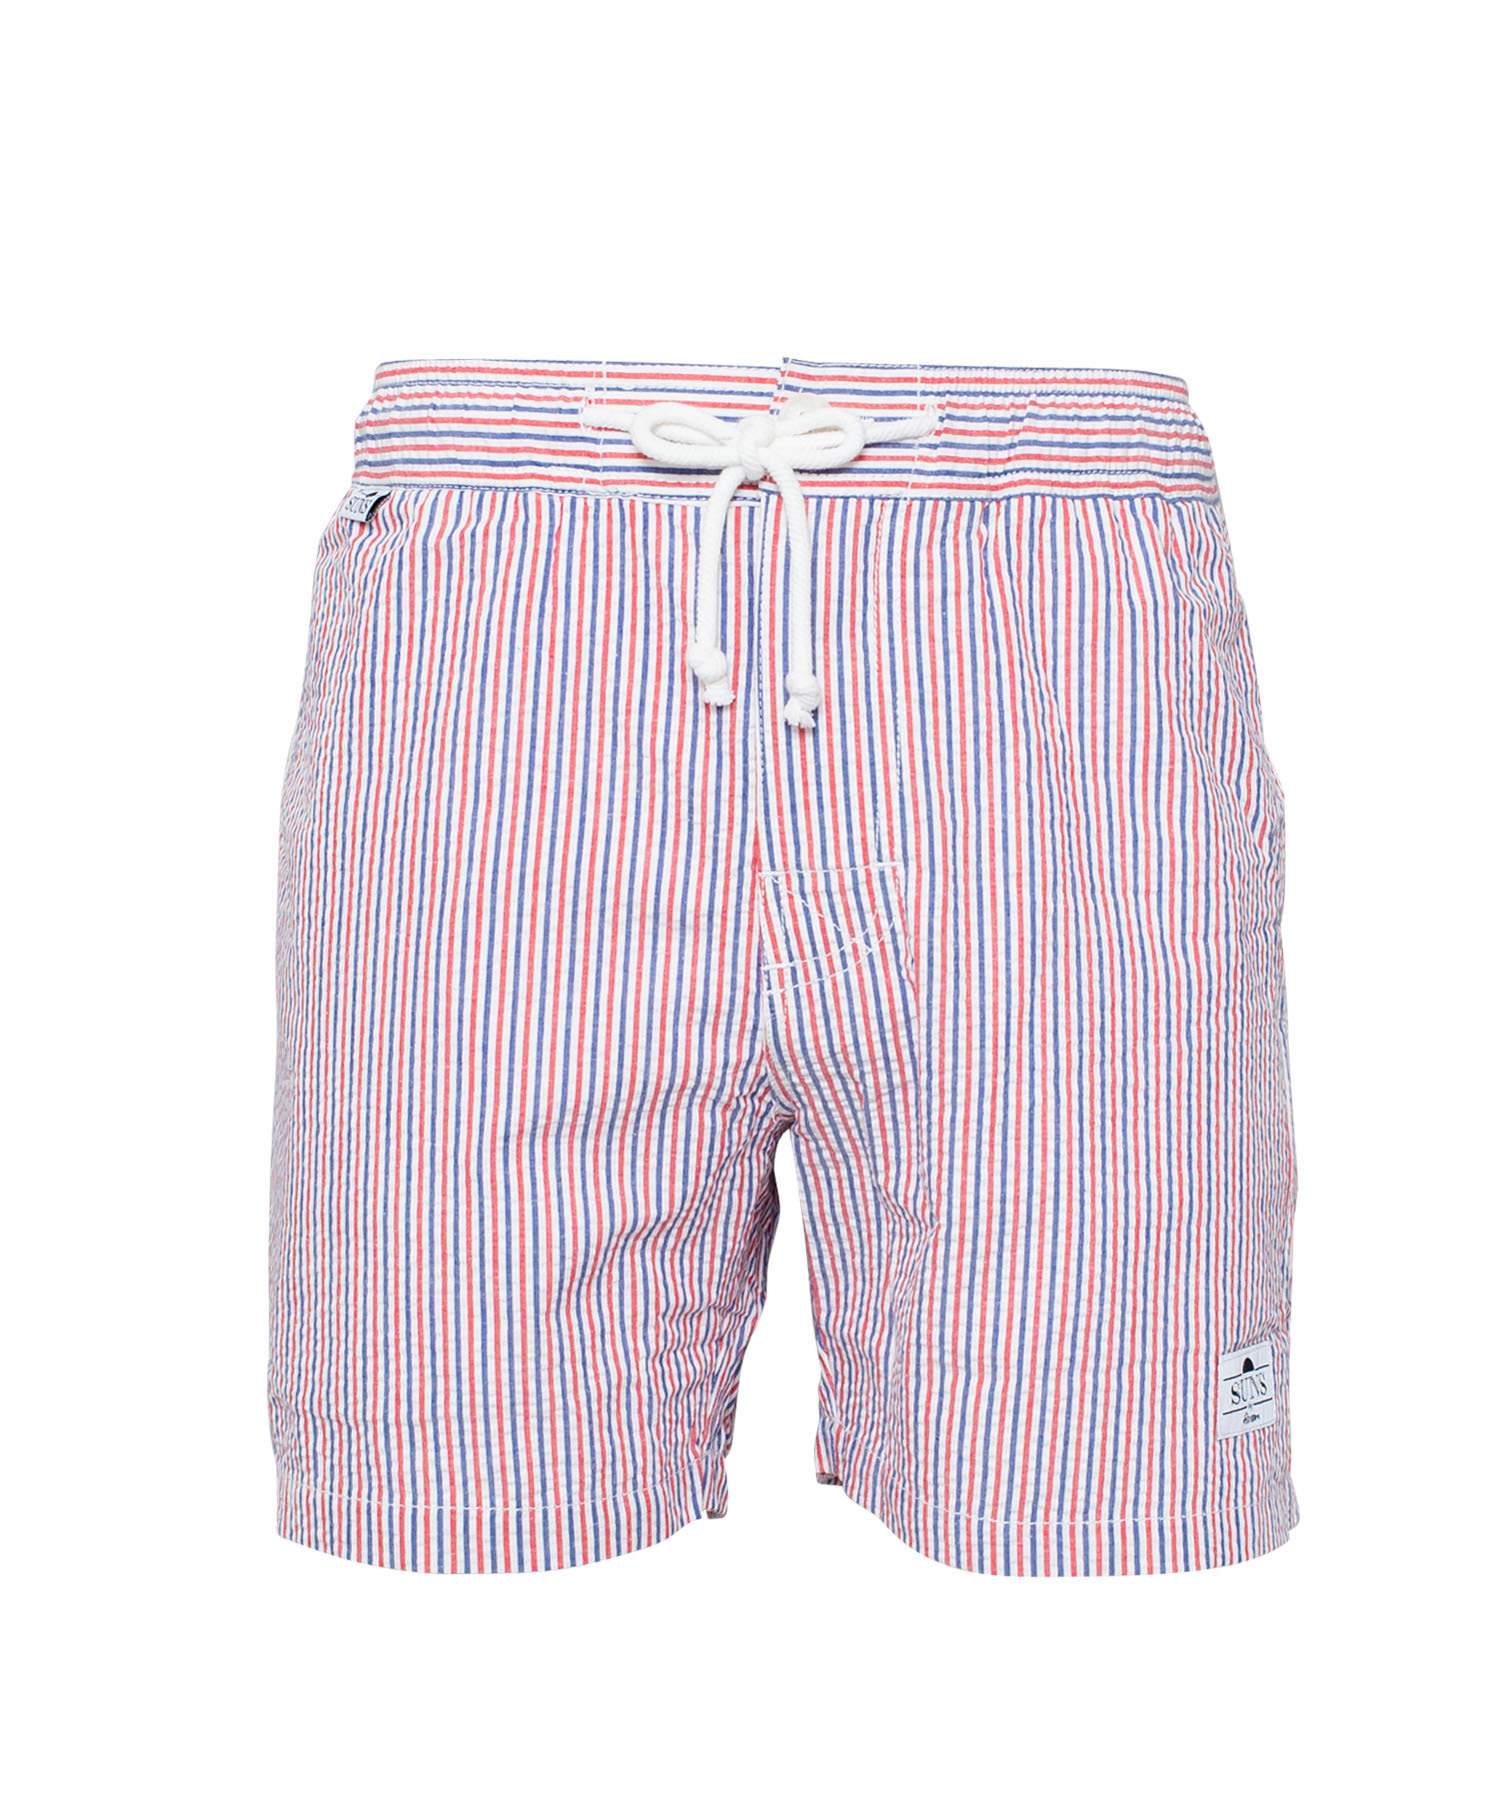 SUNS STRIPE COTTON SWIM SHORTS[RSW014]